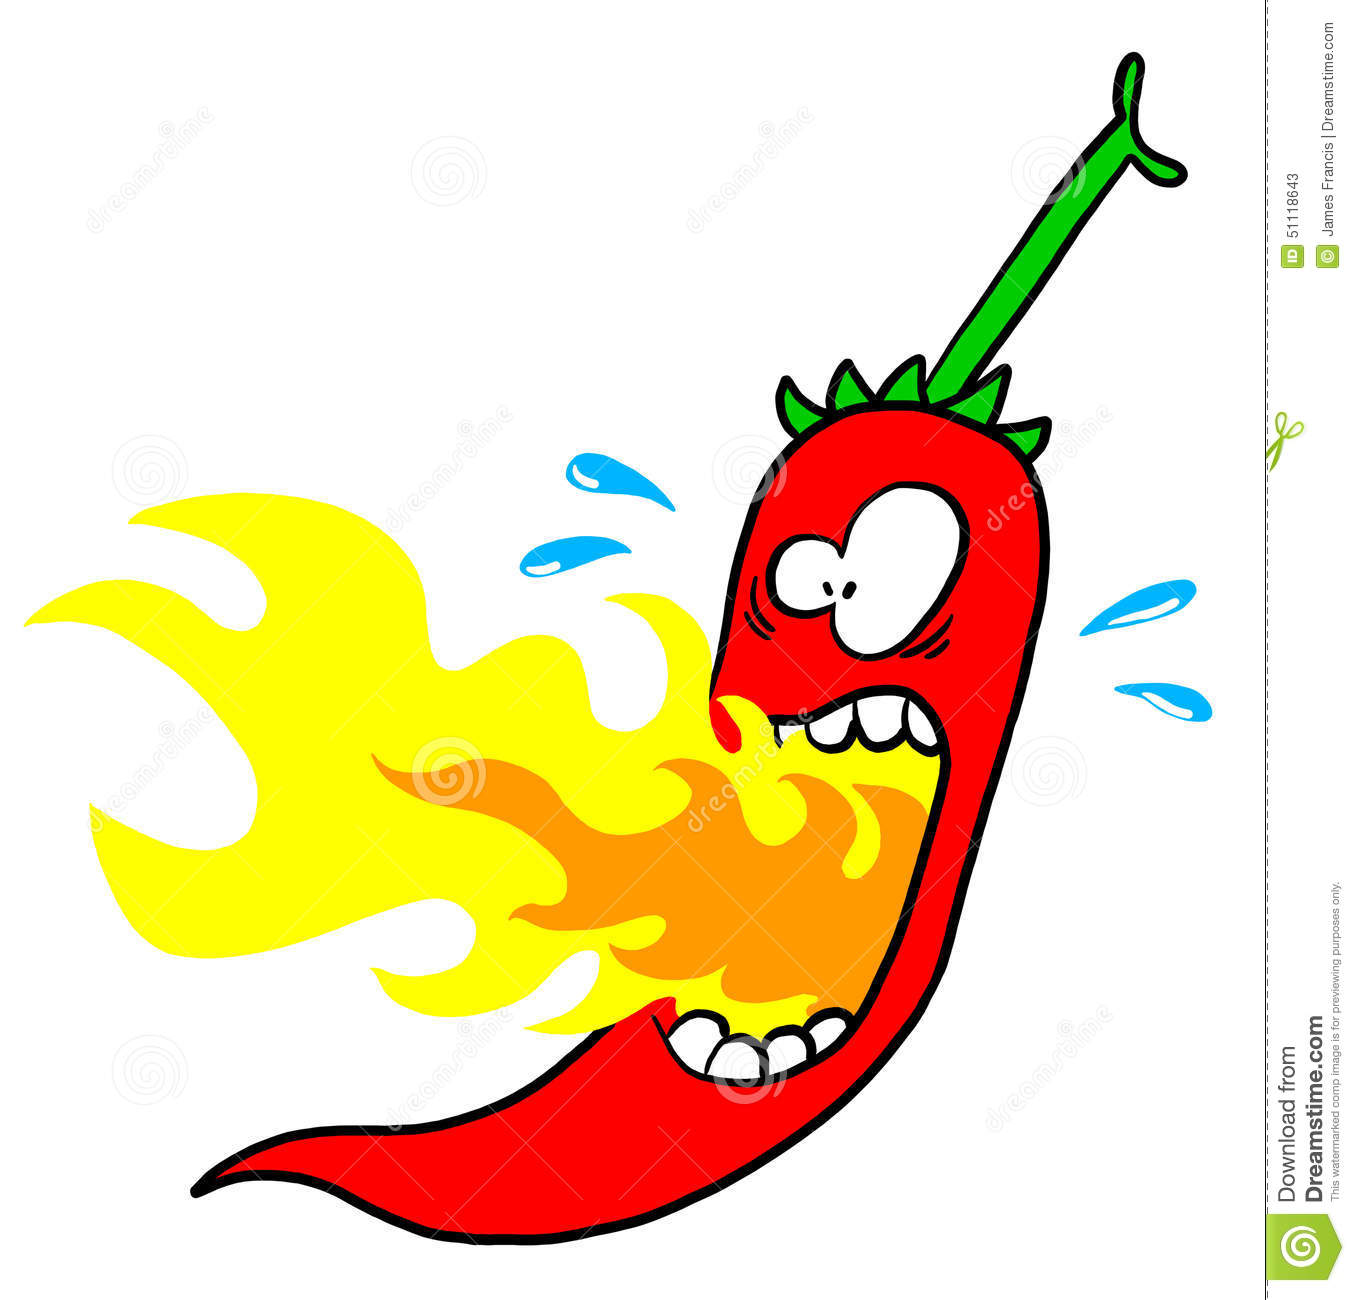 Chili with mouth on fire stock illustration image 51118643